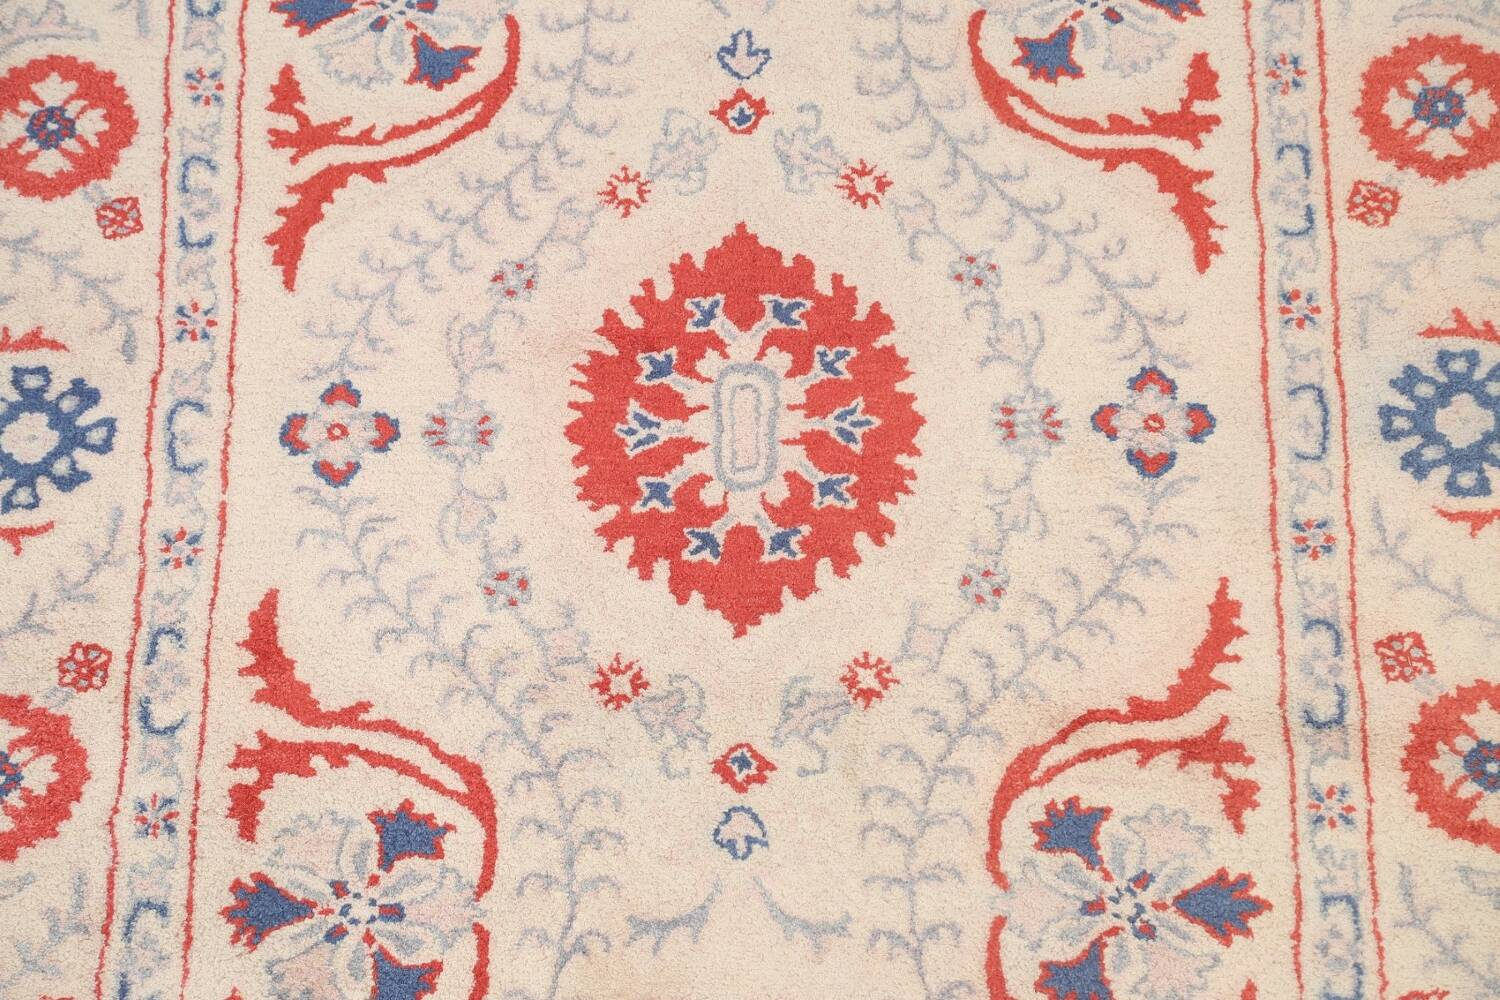 Hand-Tufted Floral Area Rug 6x8 image 4